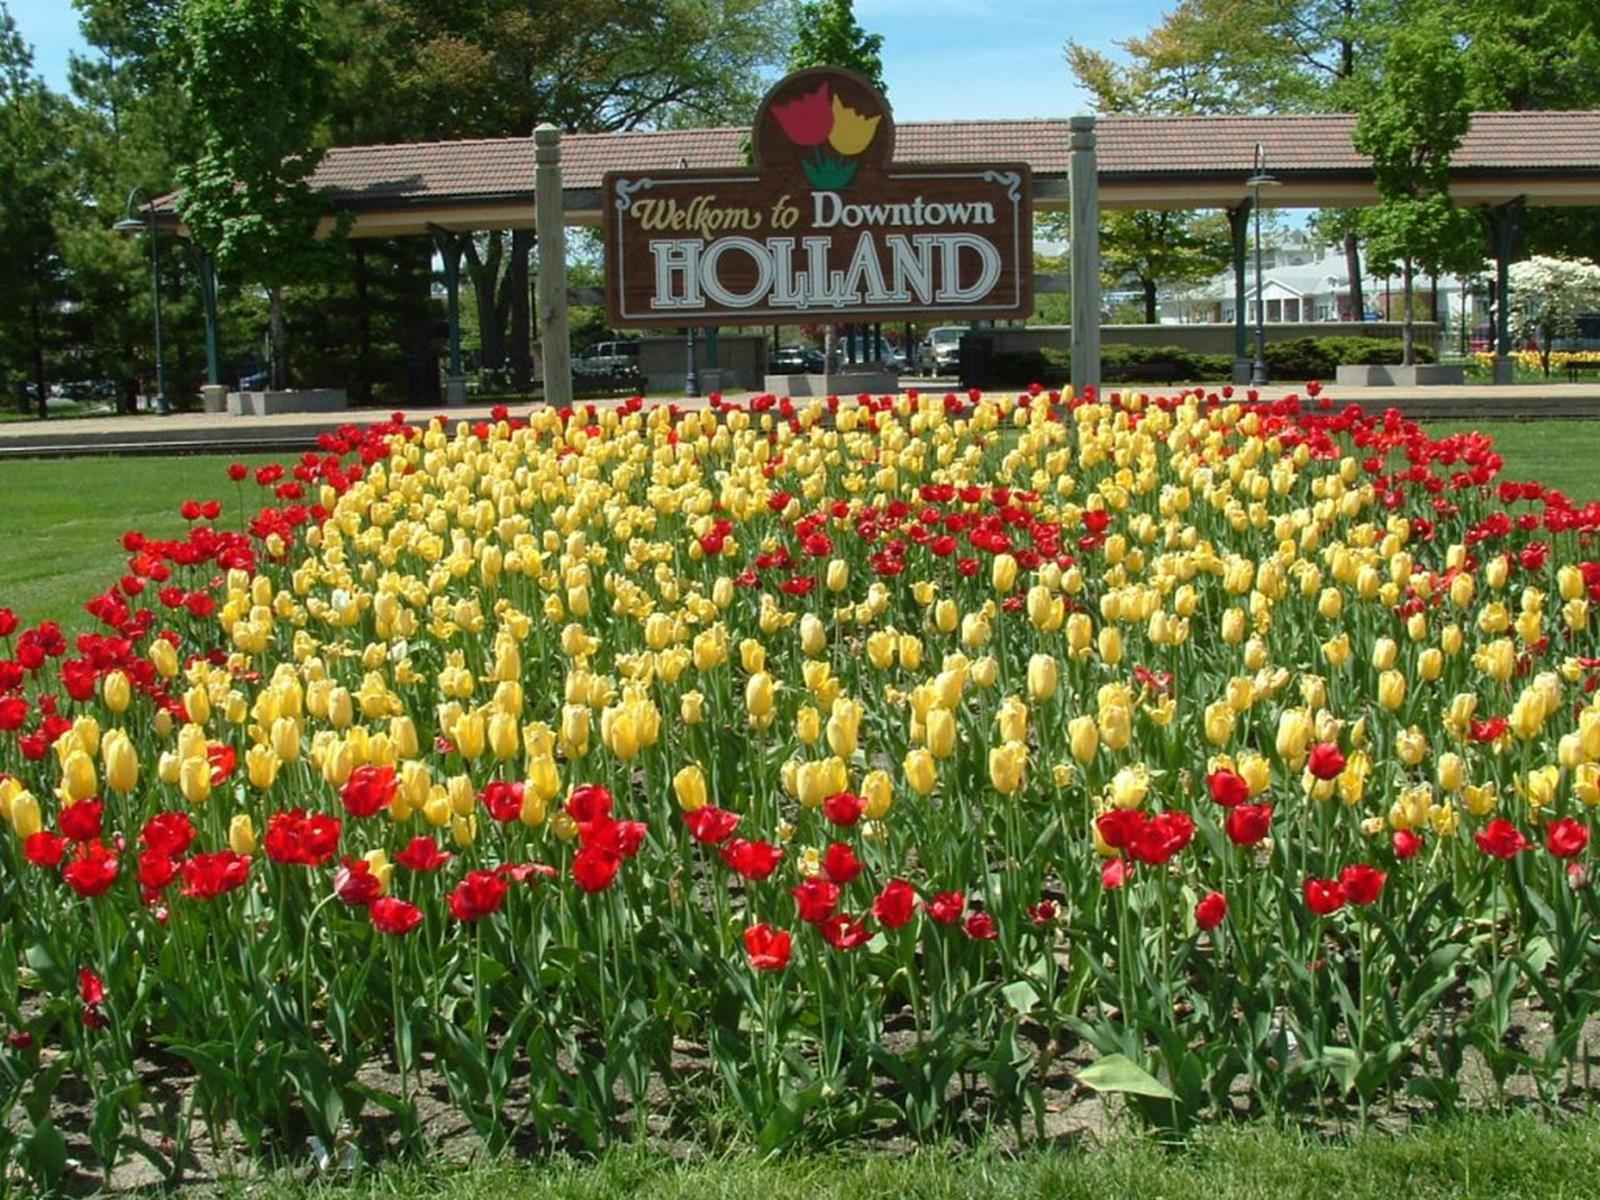 Holland's Tulip Time Festival. Credit BazookaJoe at en.wikipedia